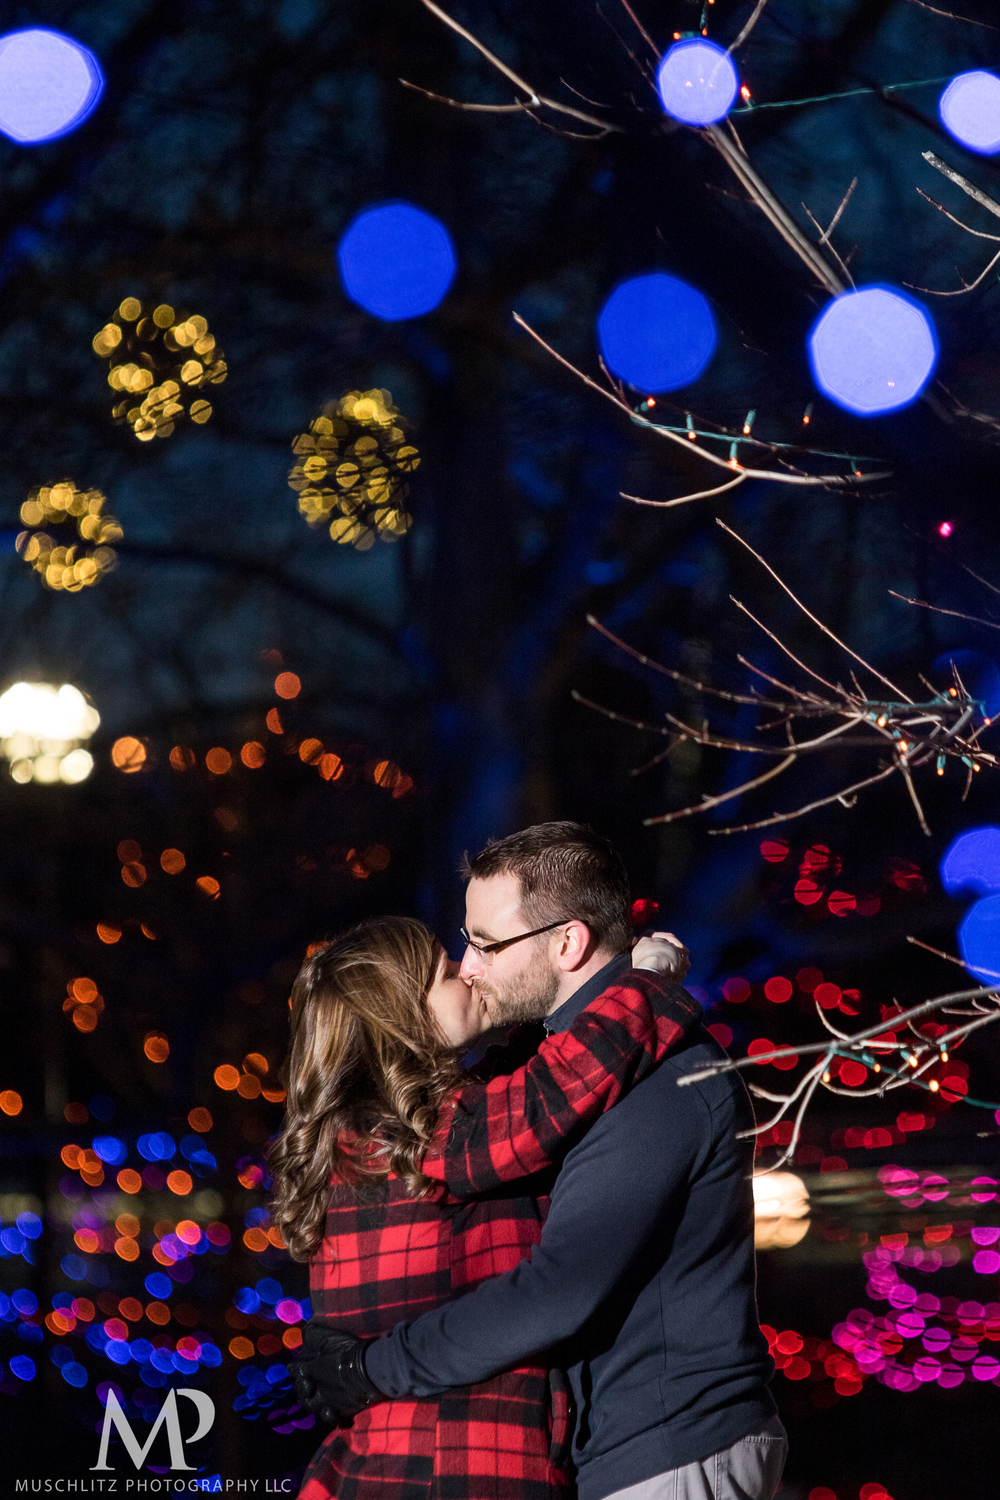 bicentennial-park-engagement-session-holiday-portraits-columbus-ohio-047.JPG